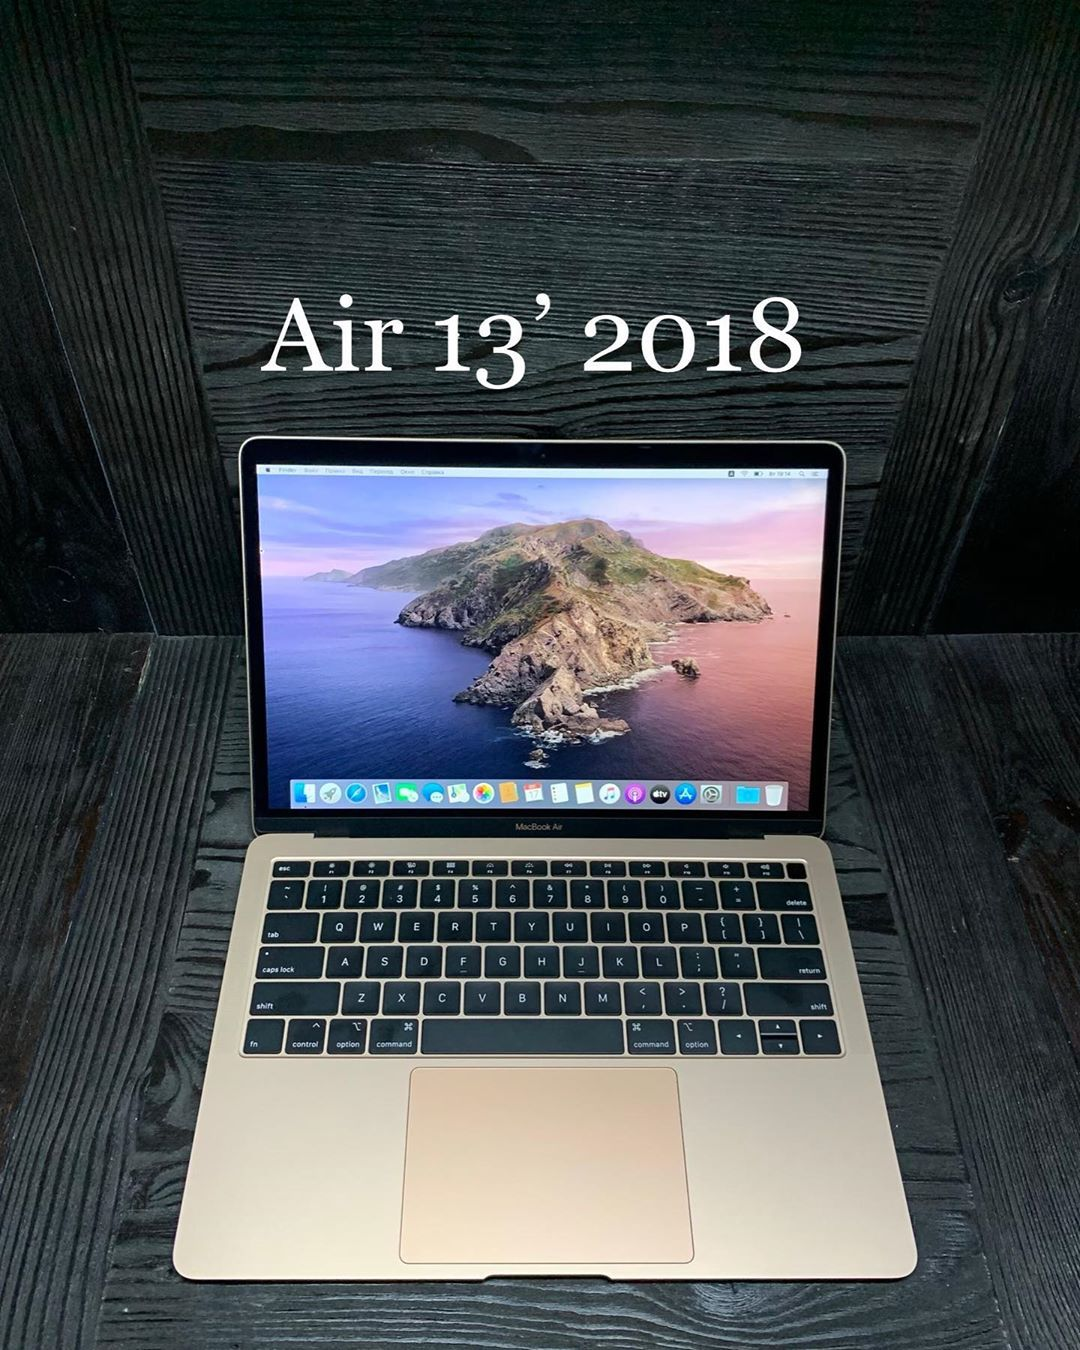 Get All Apple Products For Free Macbook Air 13 2018 Intelcore I58gb128ssd Garantiya 30 Dnej 950 Kievzhilyanskaya 126 With Images Free Giveaway Apple Air